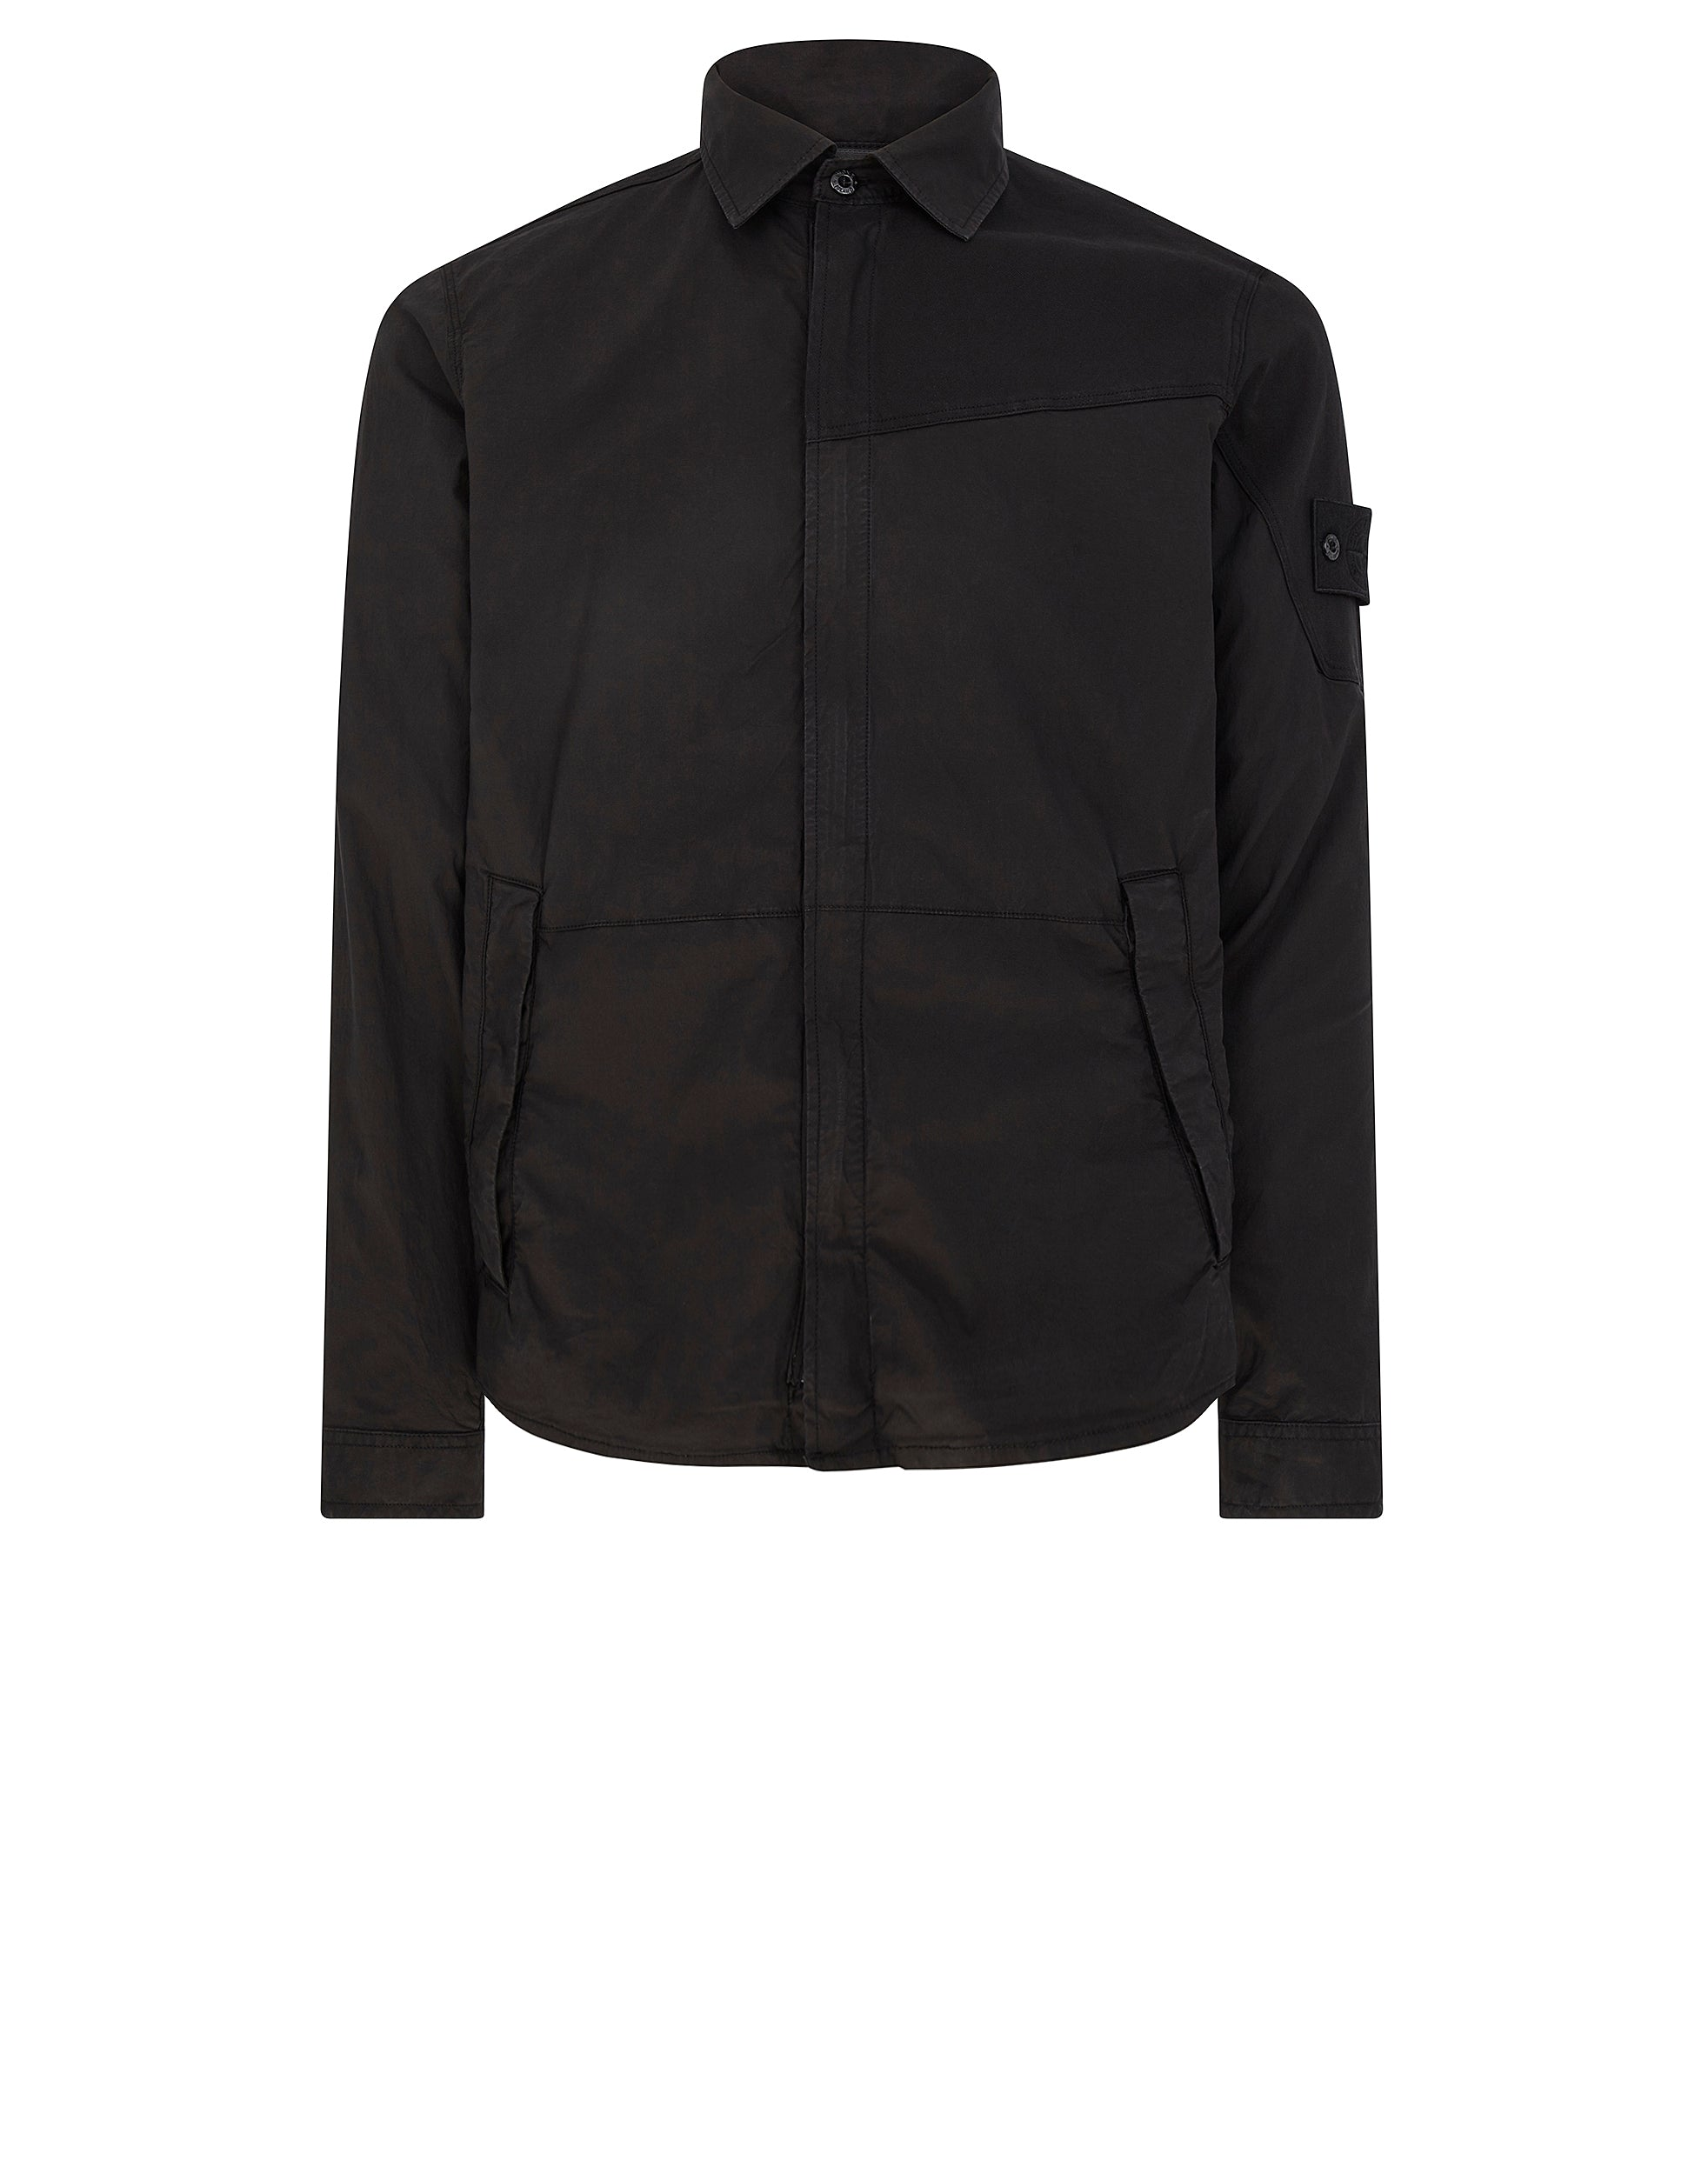 116F3 GHOST PIECE Overshirt in Black